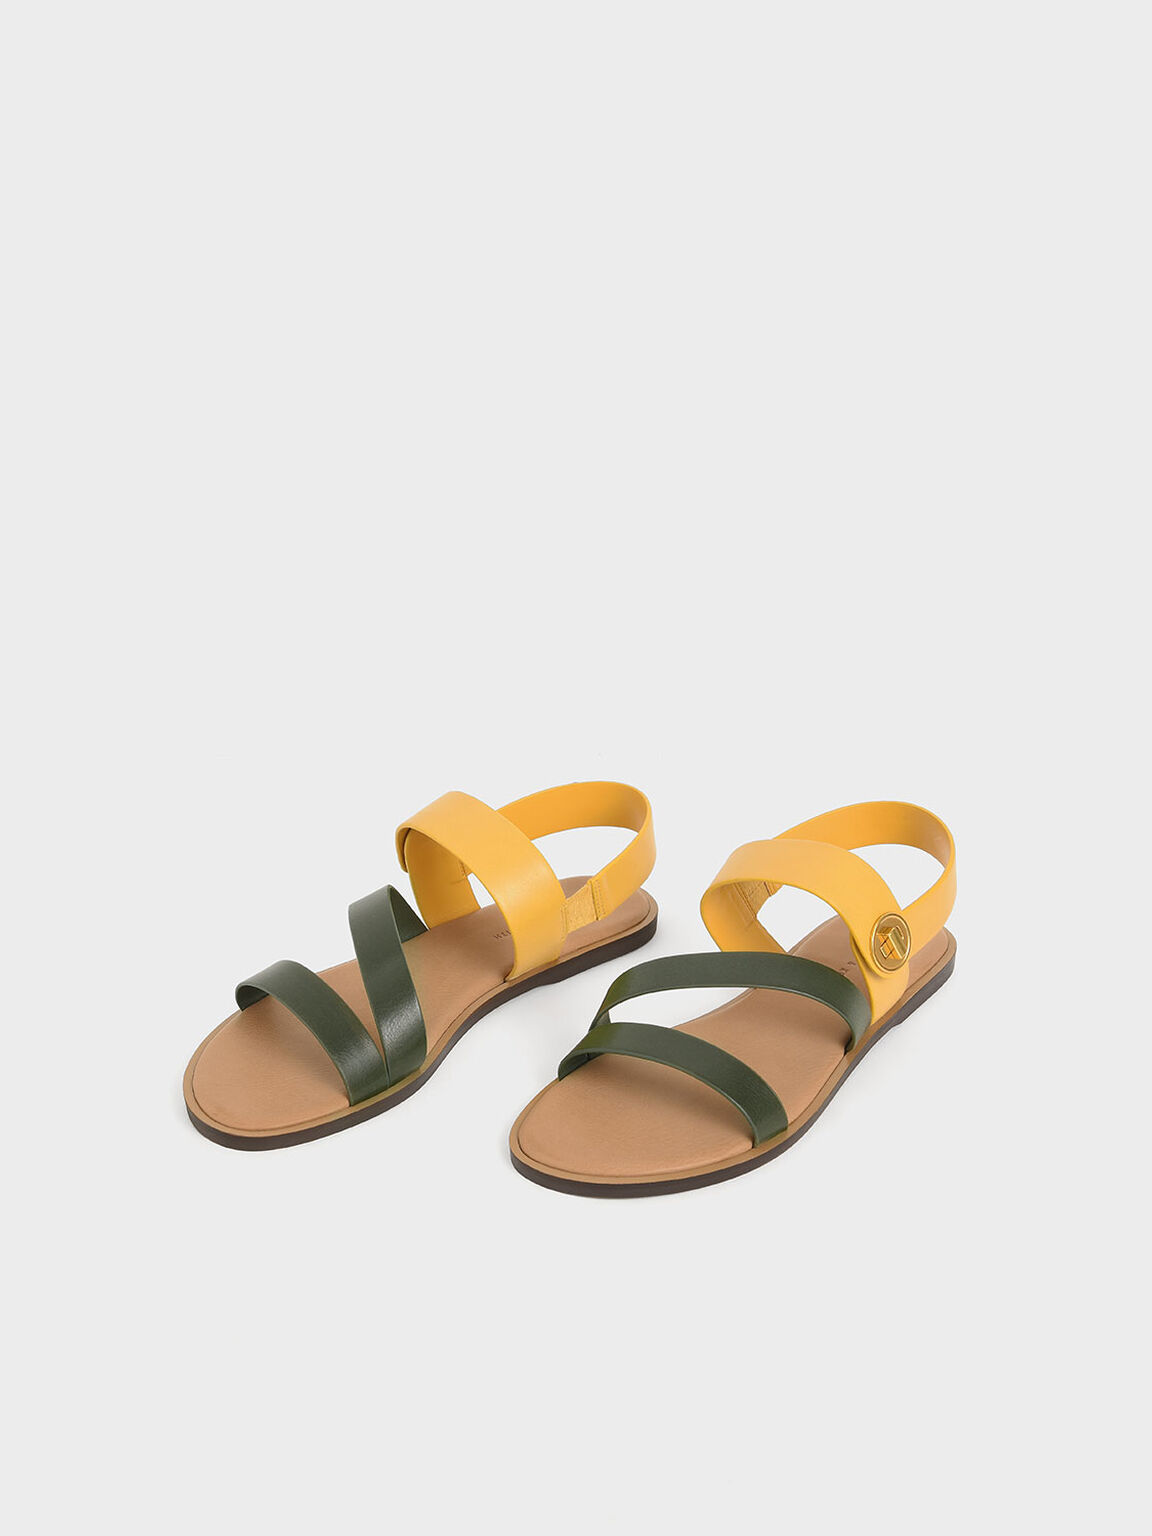 Asymmetrical Strappy Sandals, Mustard, hi-res